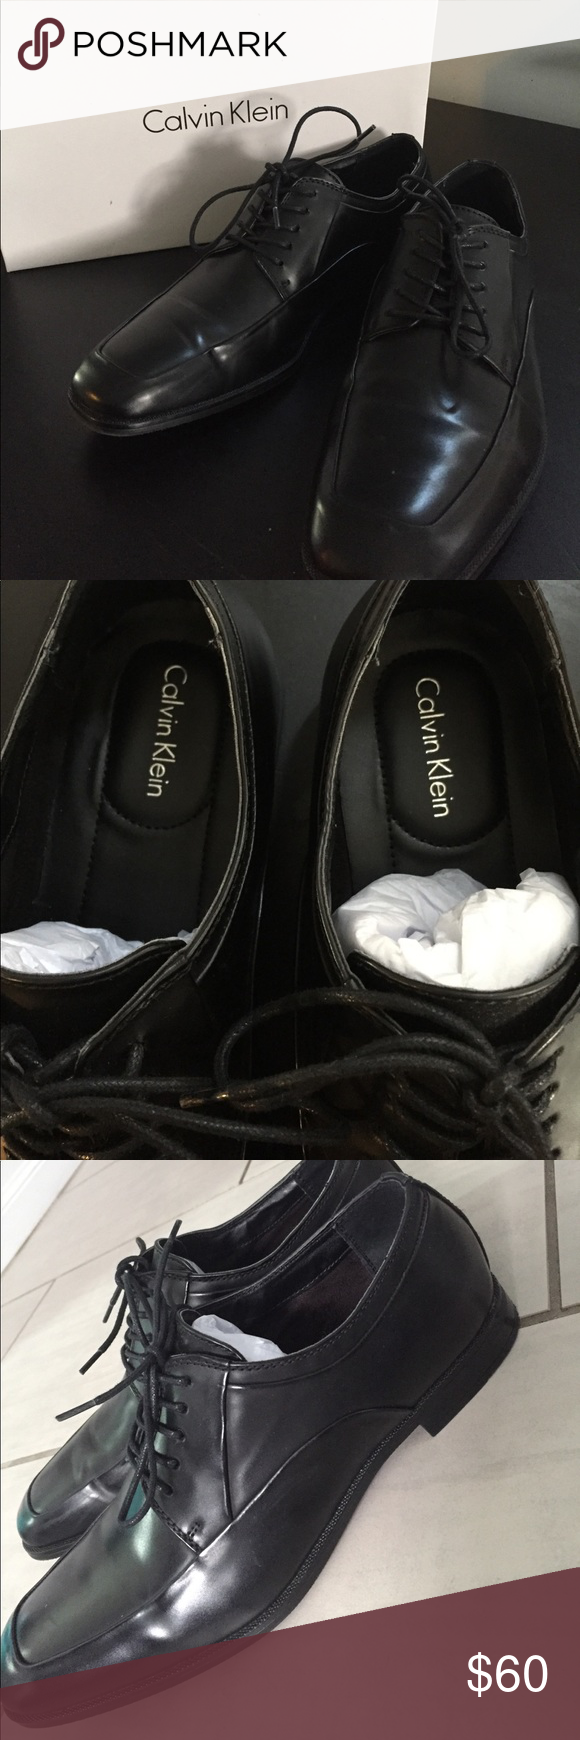 Calvin Klein Men's Black Dress Shoes Size 9.5 Hester Smooth, men's dress shoes. All black. Worn once. Practically brand new condition! Calvin Klein Shoes